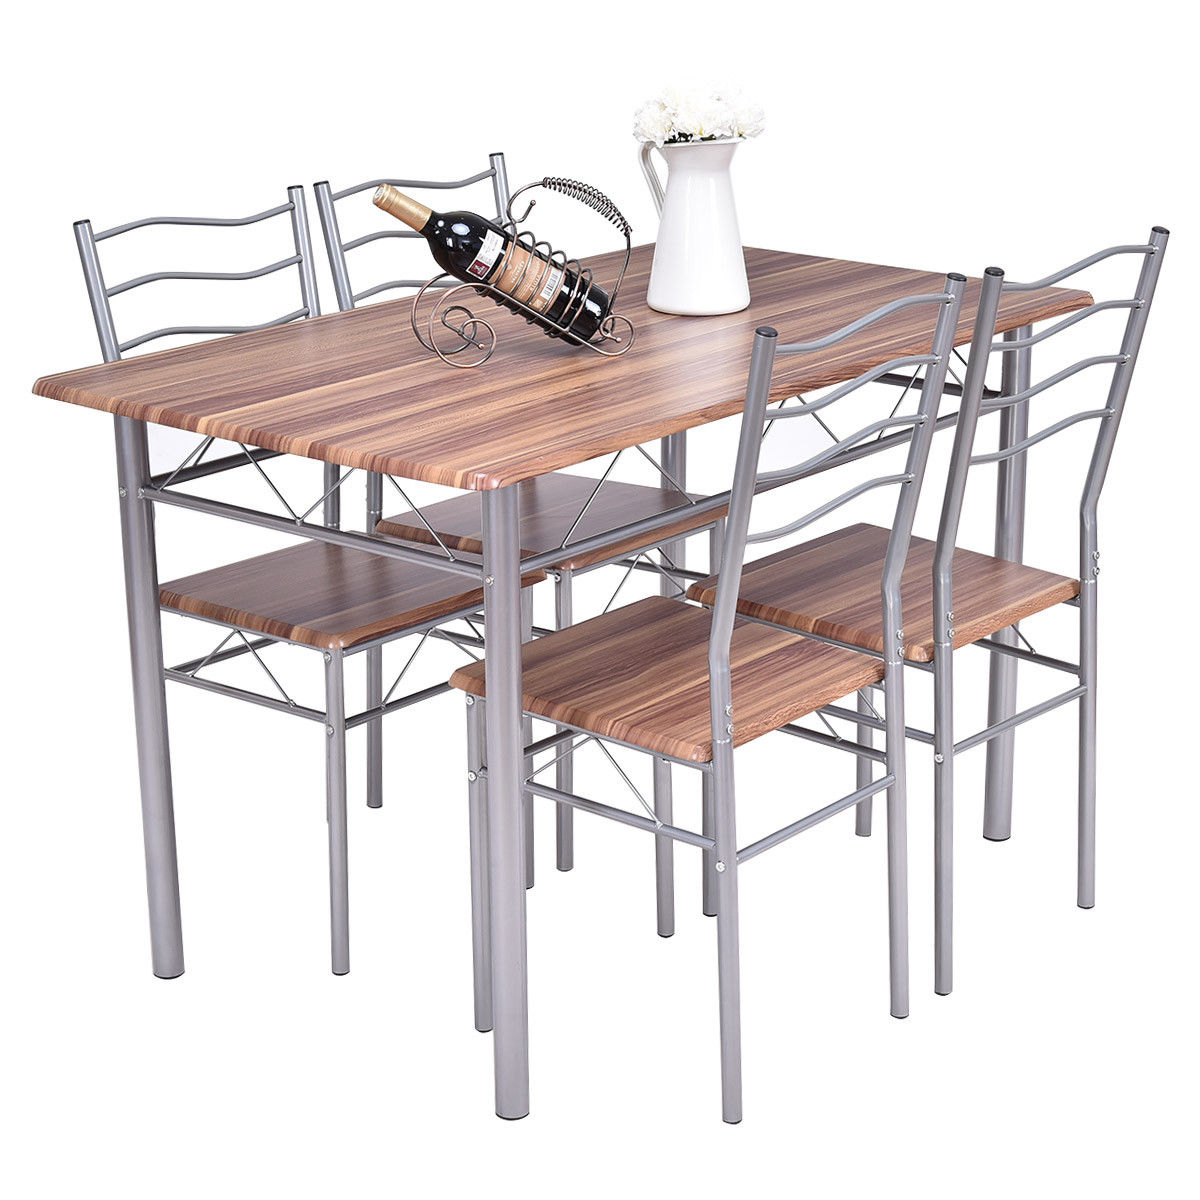 Gymax 5 Piece Dining Set Beech Wooden Color Table And 4 Chairs Kitchen Dining Room New